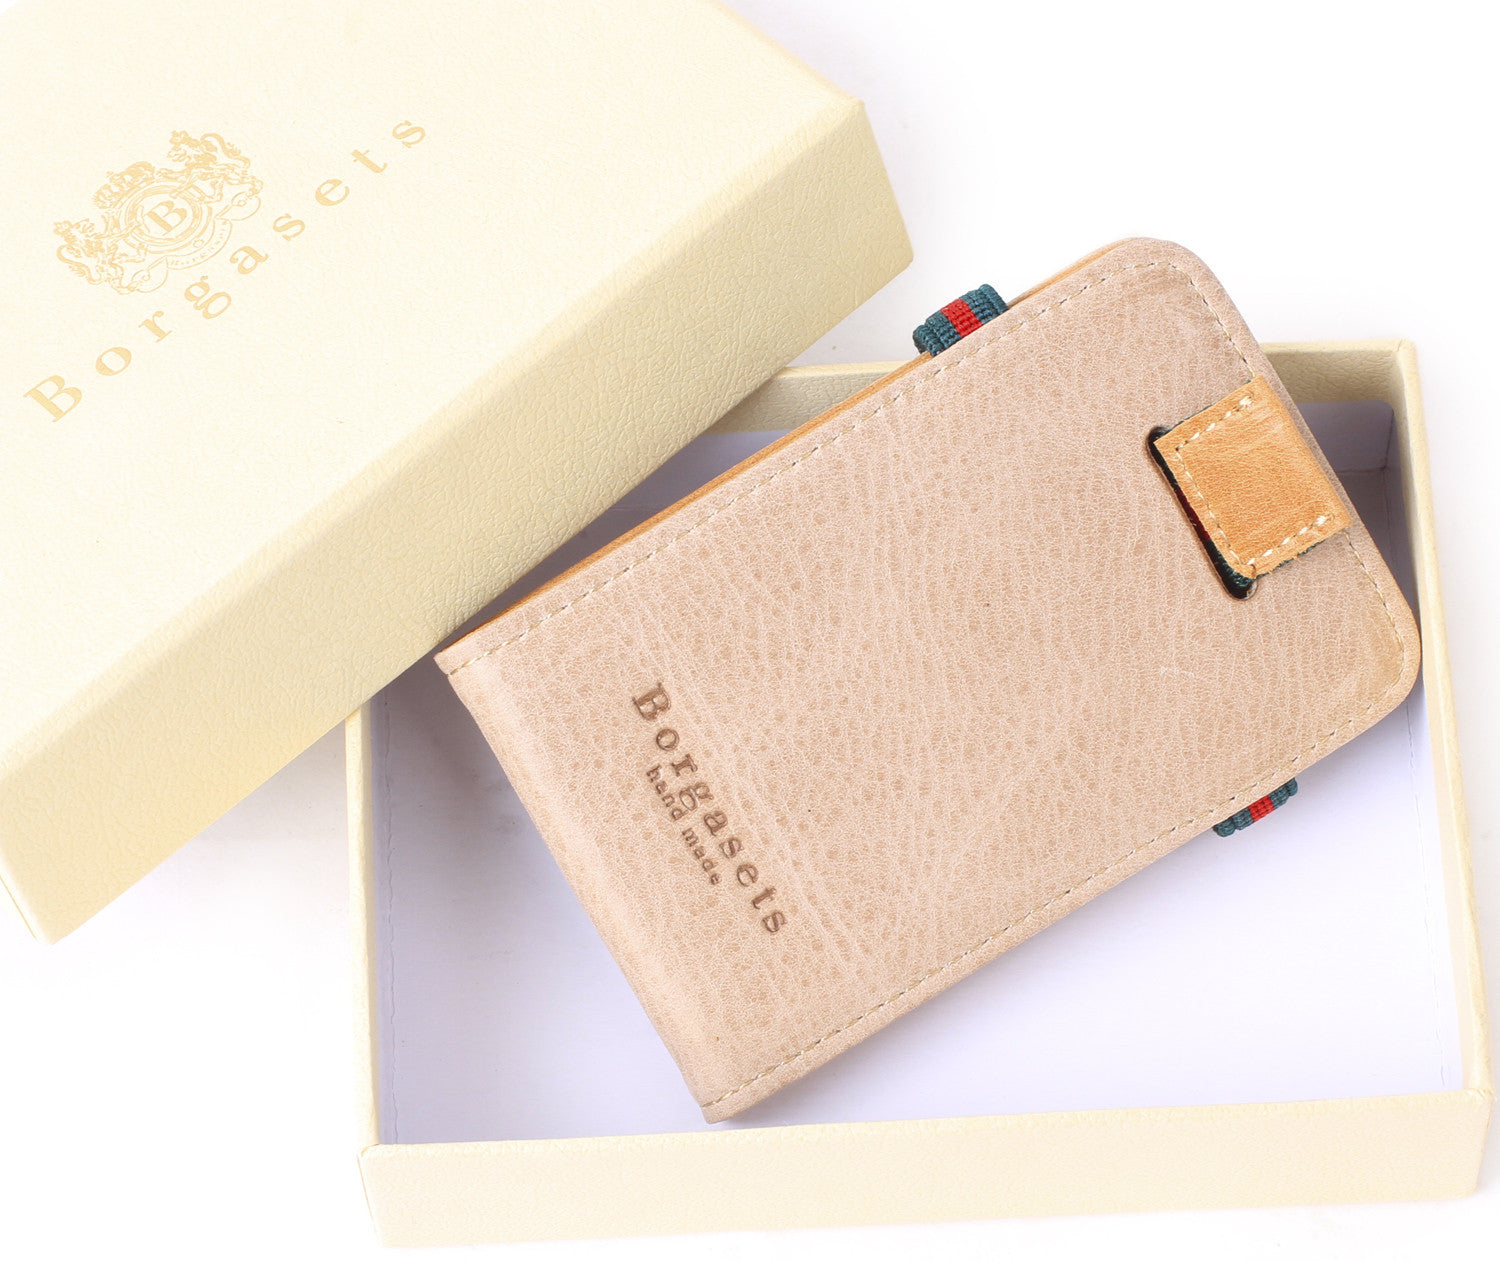 Wolly Leather Slim Wallet Credit Card Holder Unisex, Apricot - Borgasets